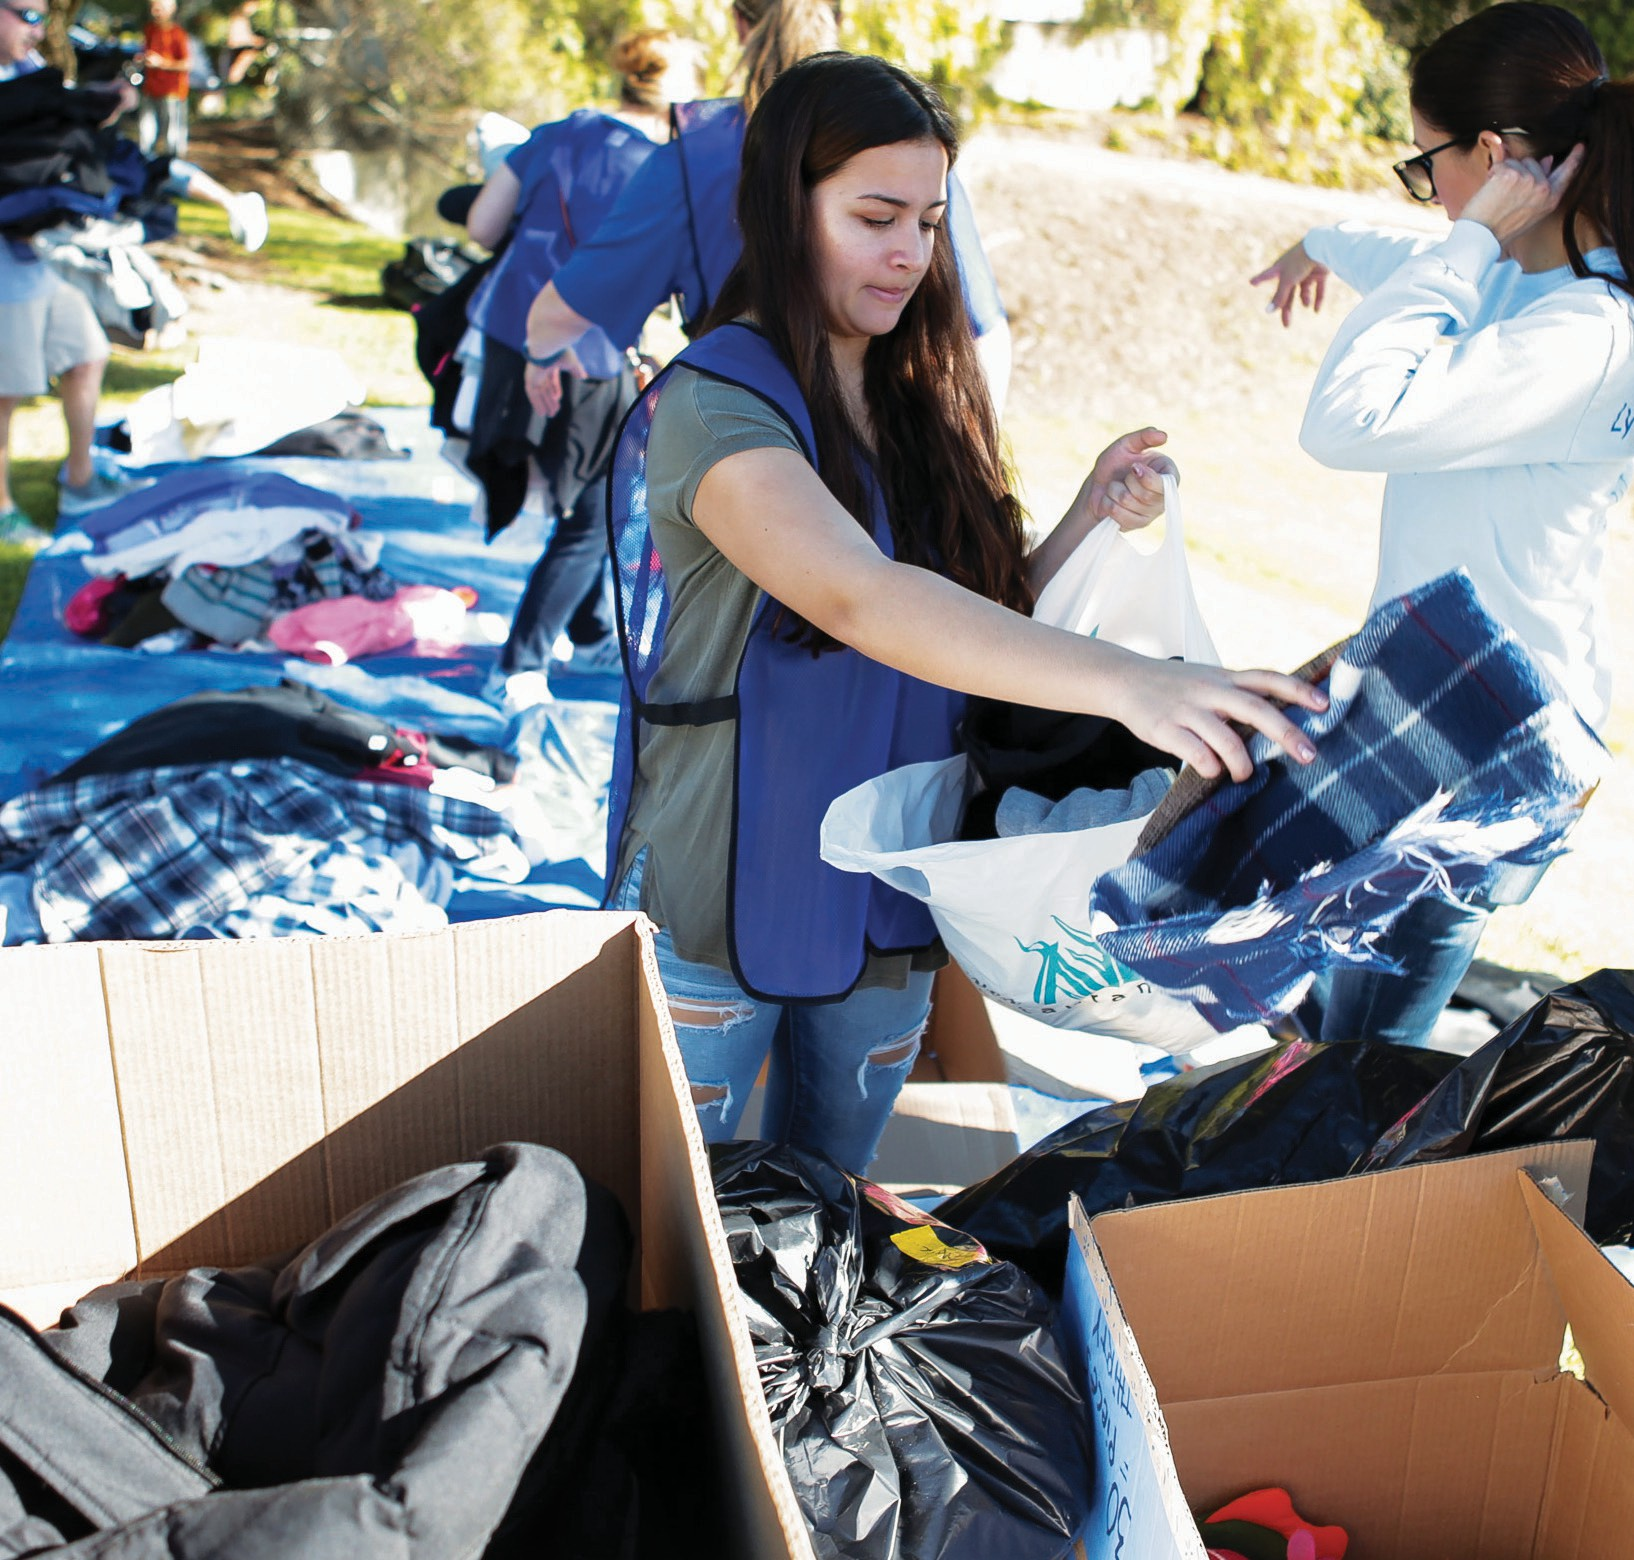 HELPING HANDS—Madi McMichael of Thousand Oaks sorts the donated items during the Coats for Casa Pacifica drive. In addition to playing in the snow, people of all ages took part in arts and crafts and drank free coffee and smoothies while they dropped off their gently used warm clothing items. The annual event benefits Casa Pacifica in Camarillo, an organization that offers free services and shelter to at-risk youth and their families.